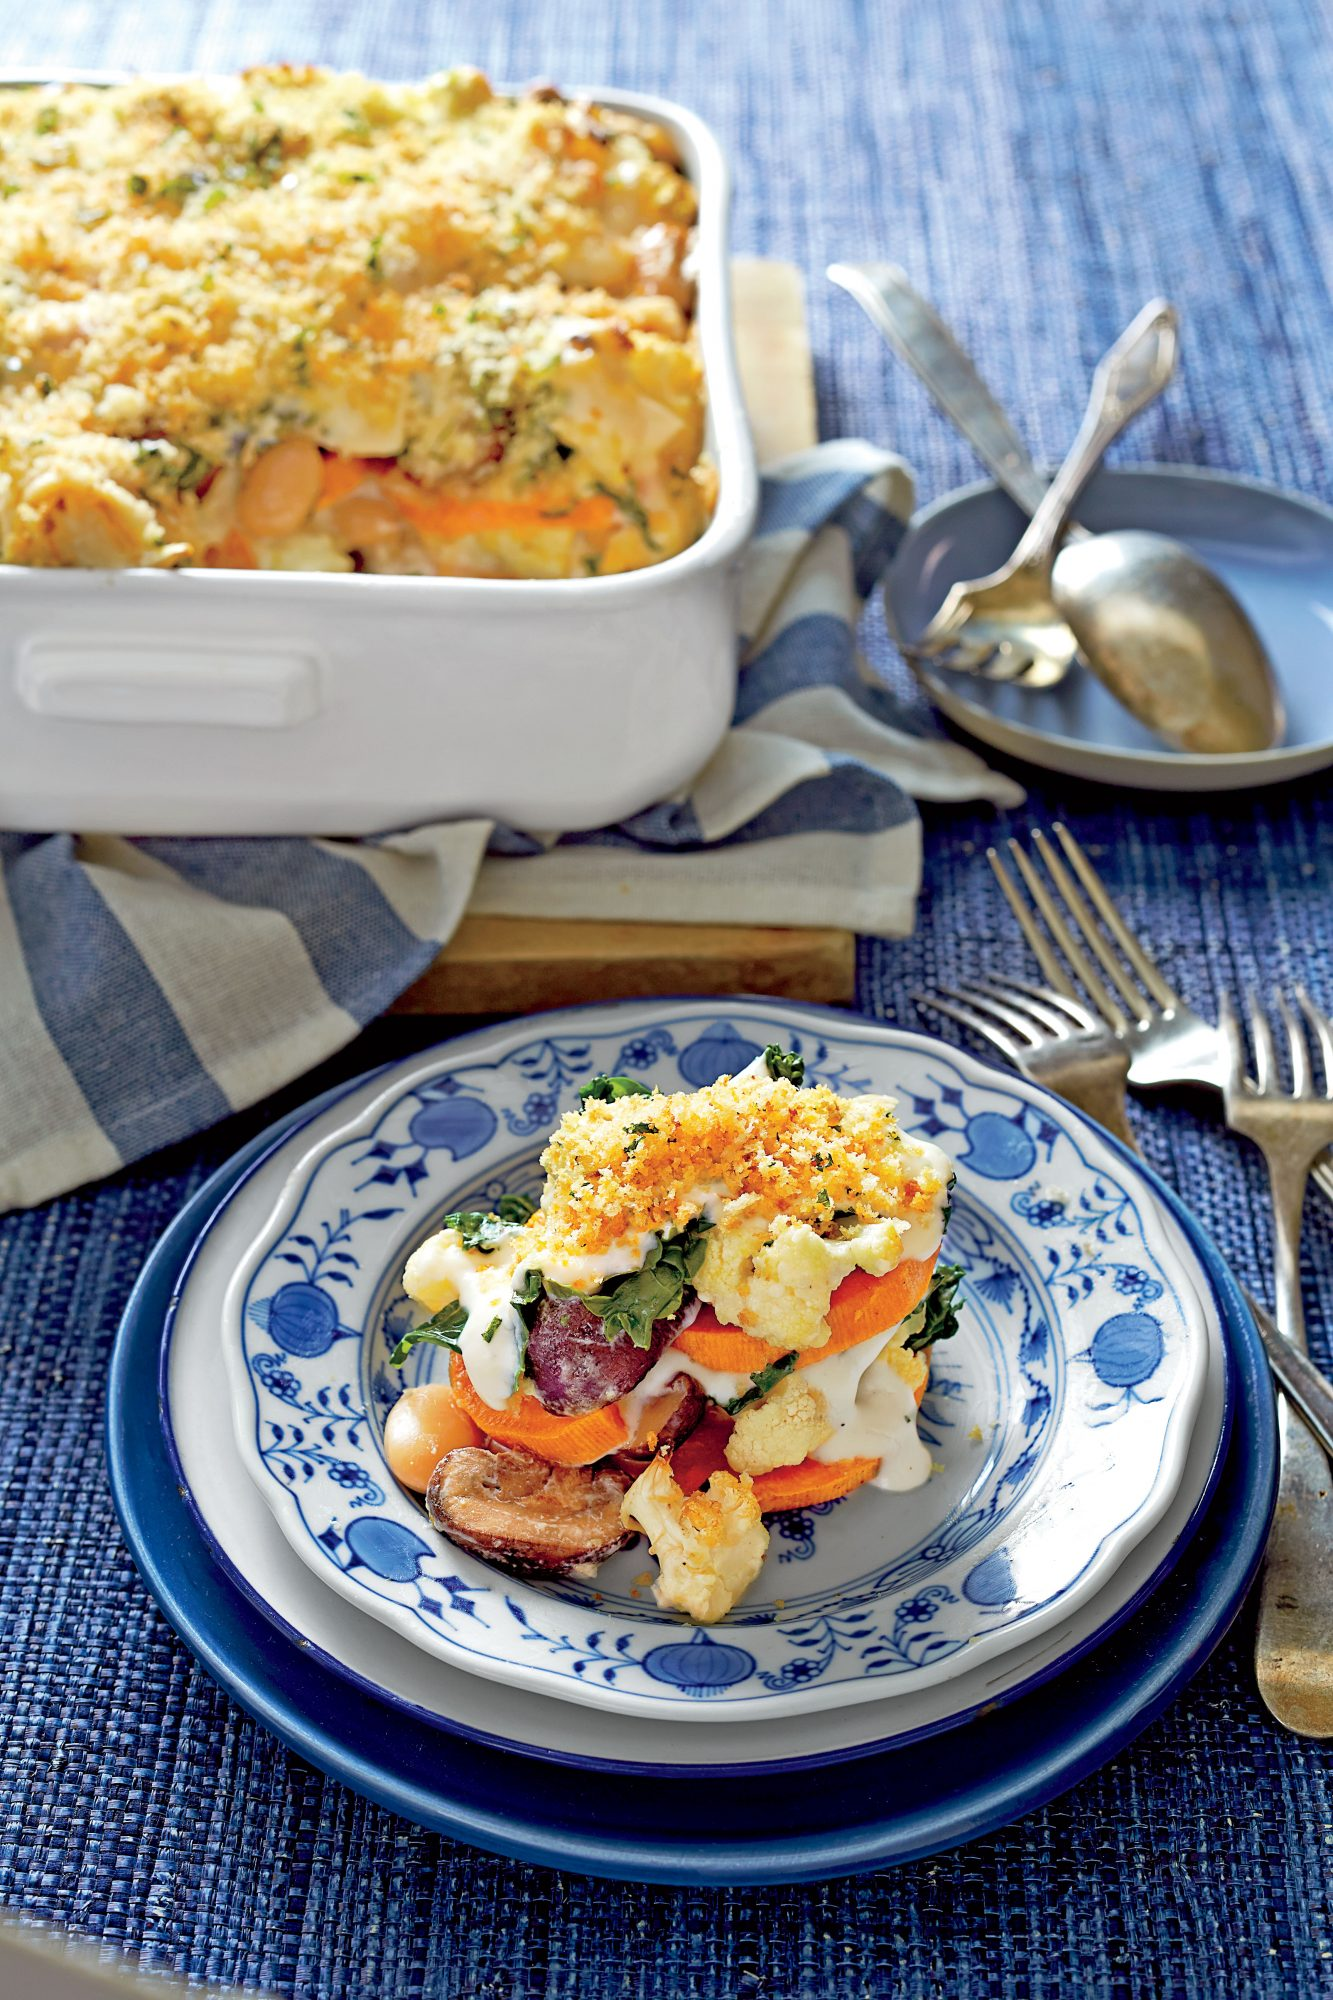 50 Best Thanksgiving Sweet Potato, Cauliflower, and Greens Casserole